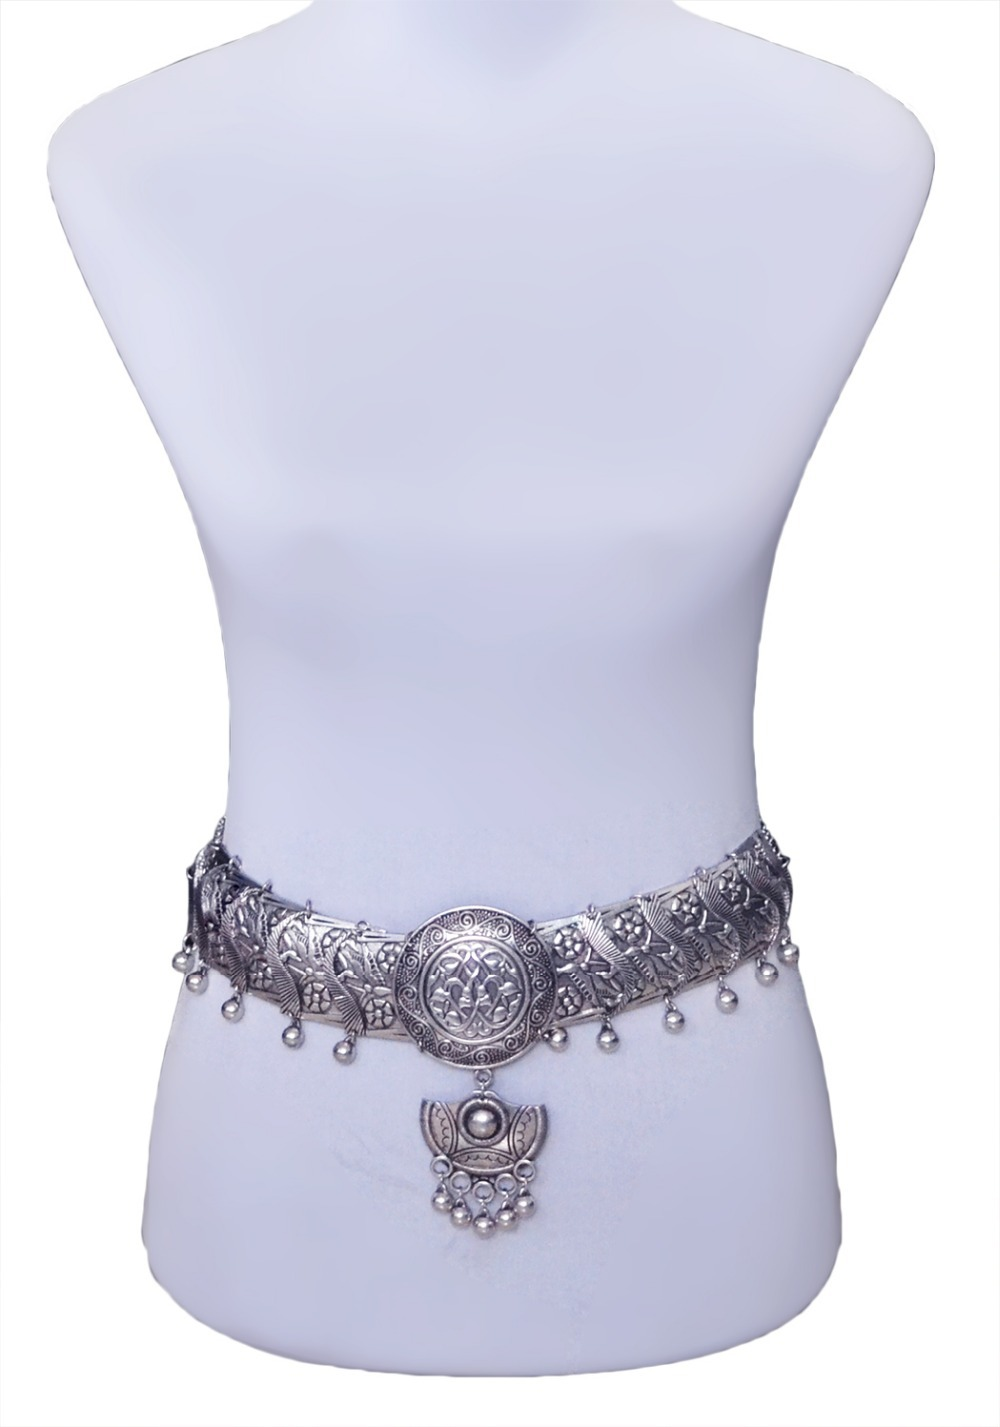 Gypsy Silver Hippie Carved Large Round Turkish Bohemian Shimmy Belt Dance Body Necklace Dangle Metal Balls Belly Chain Jewelry<br><br>Aliexpress